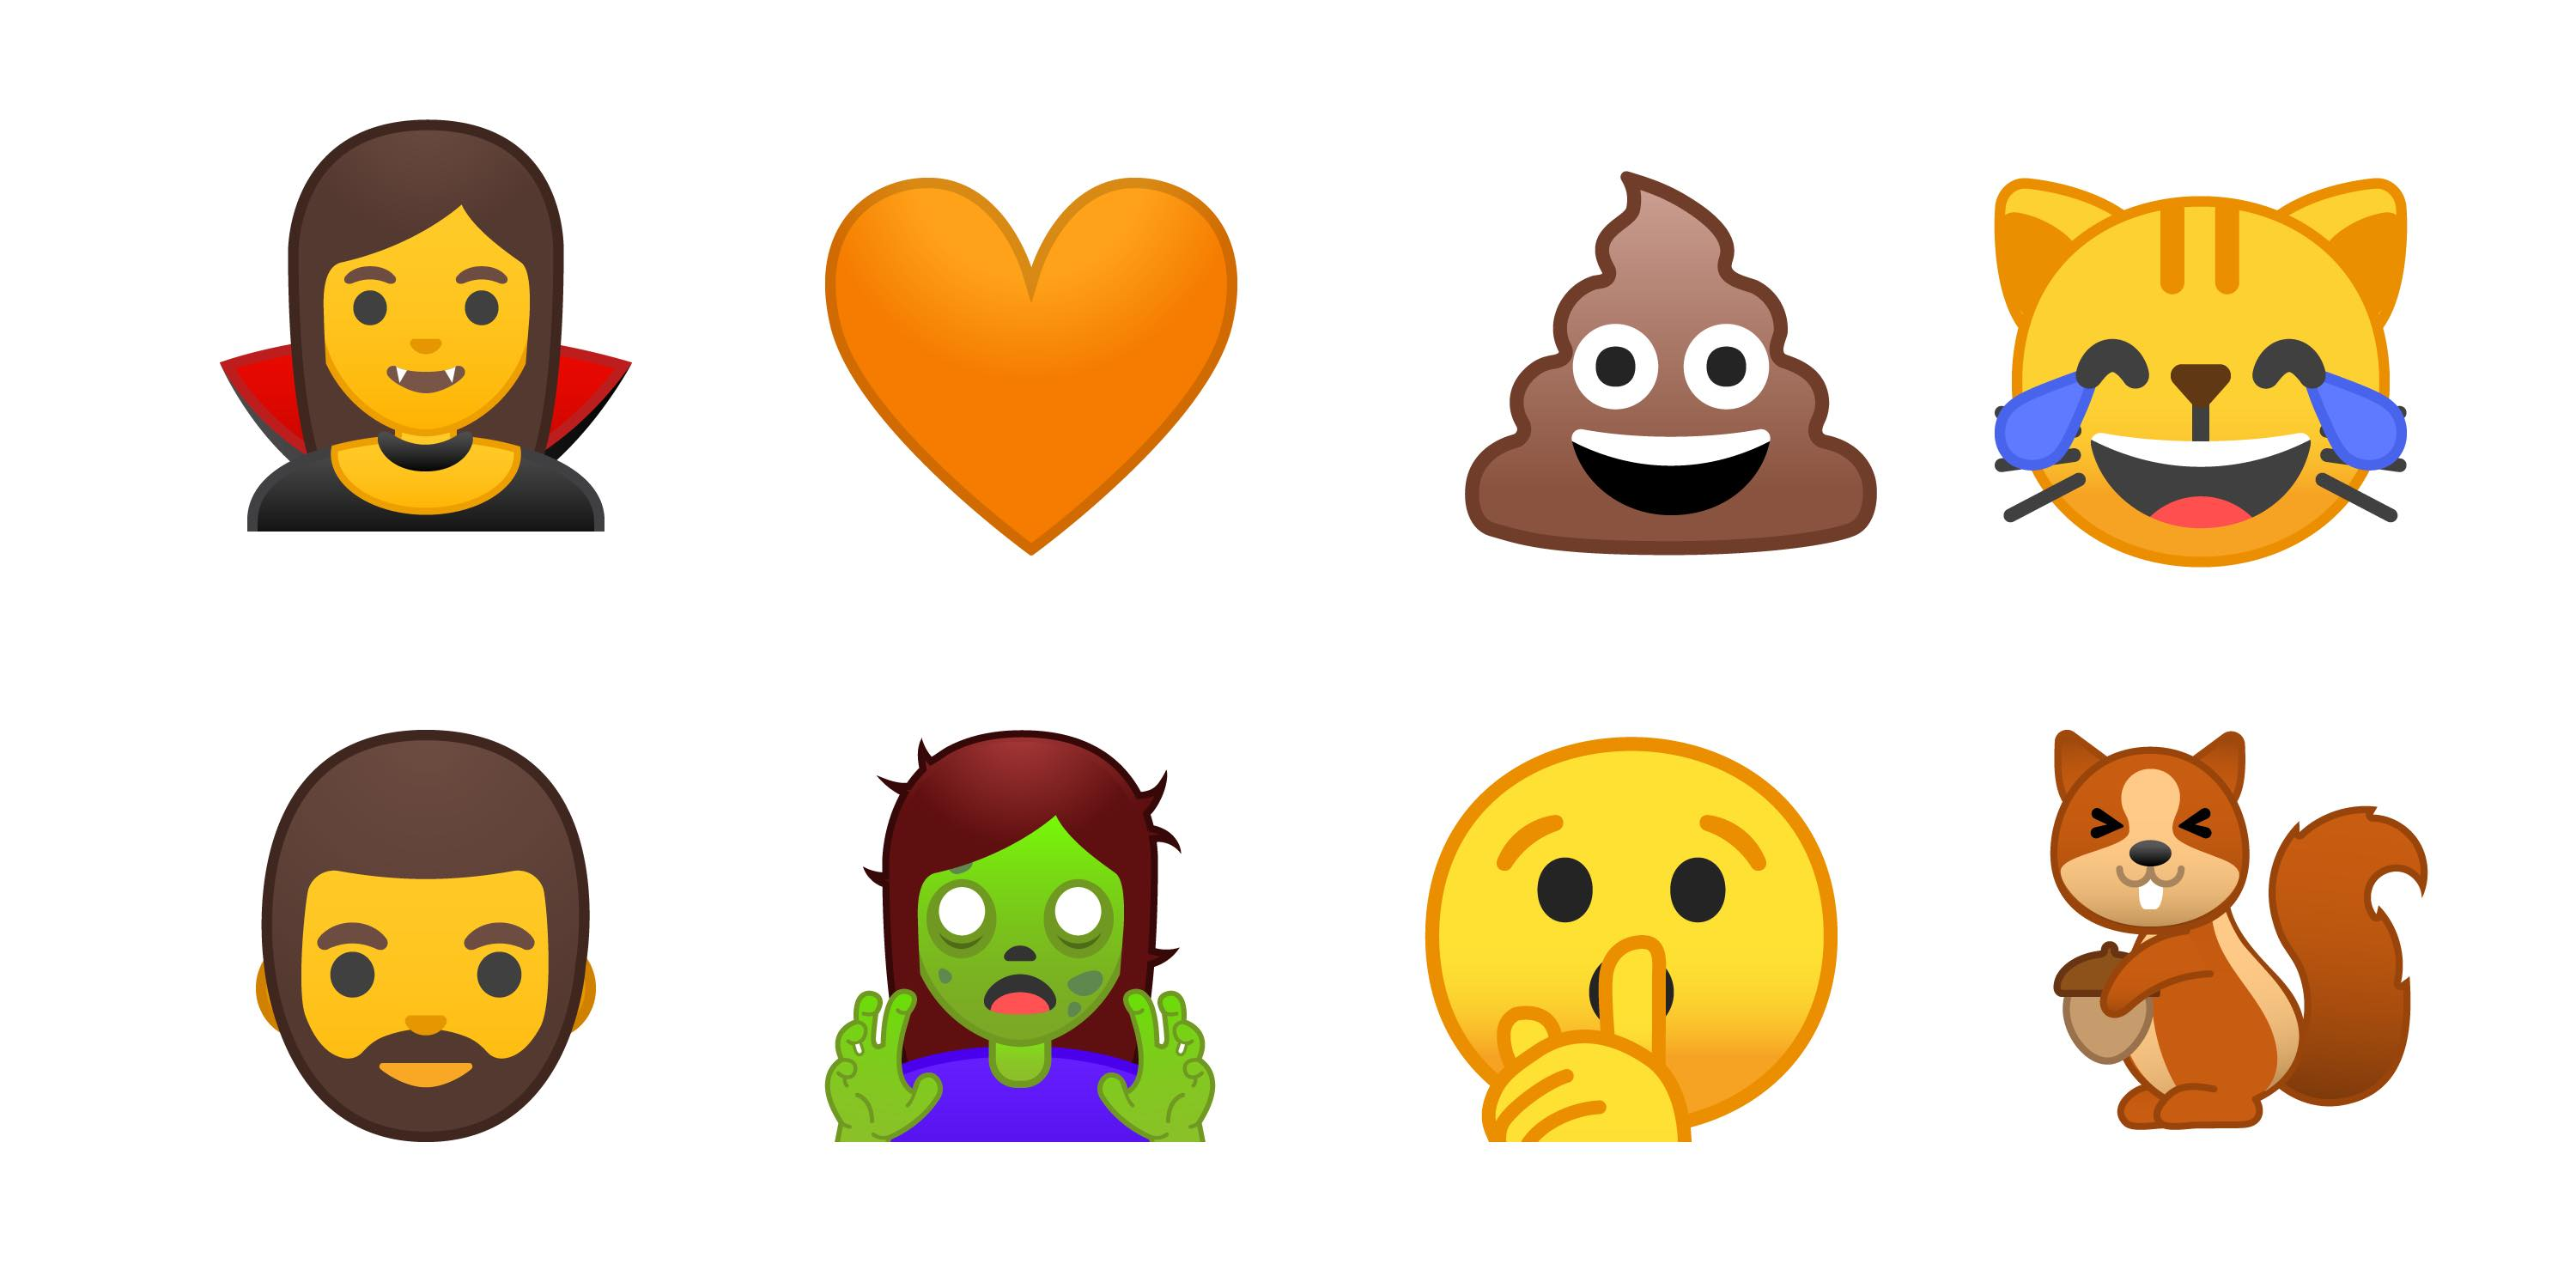 How To Get Iphone Emojis On Snapchat